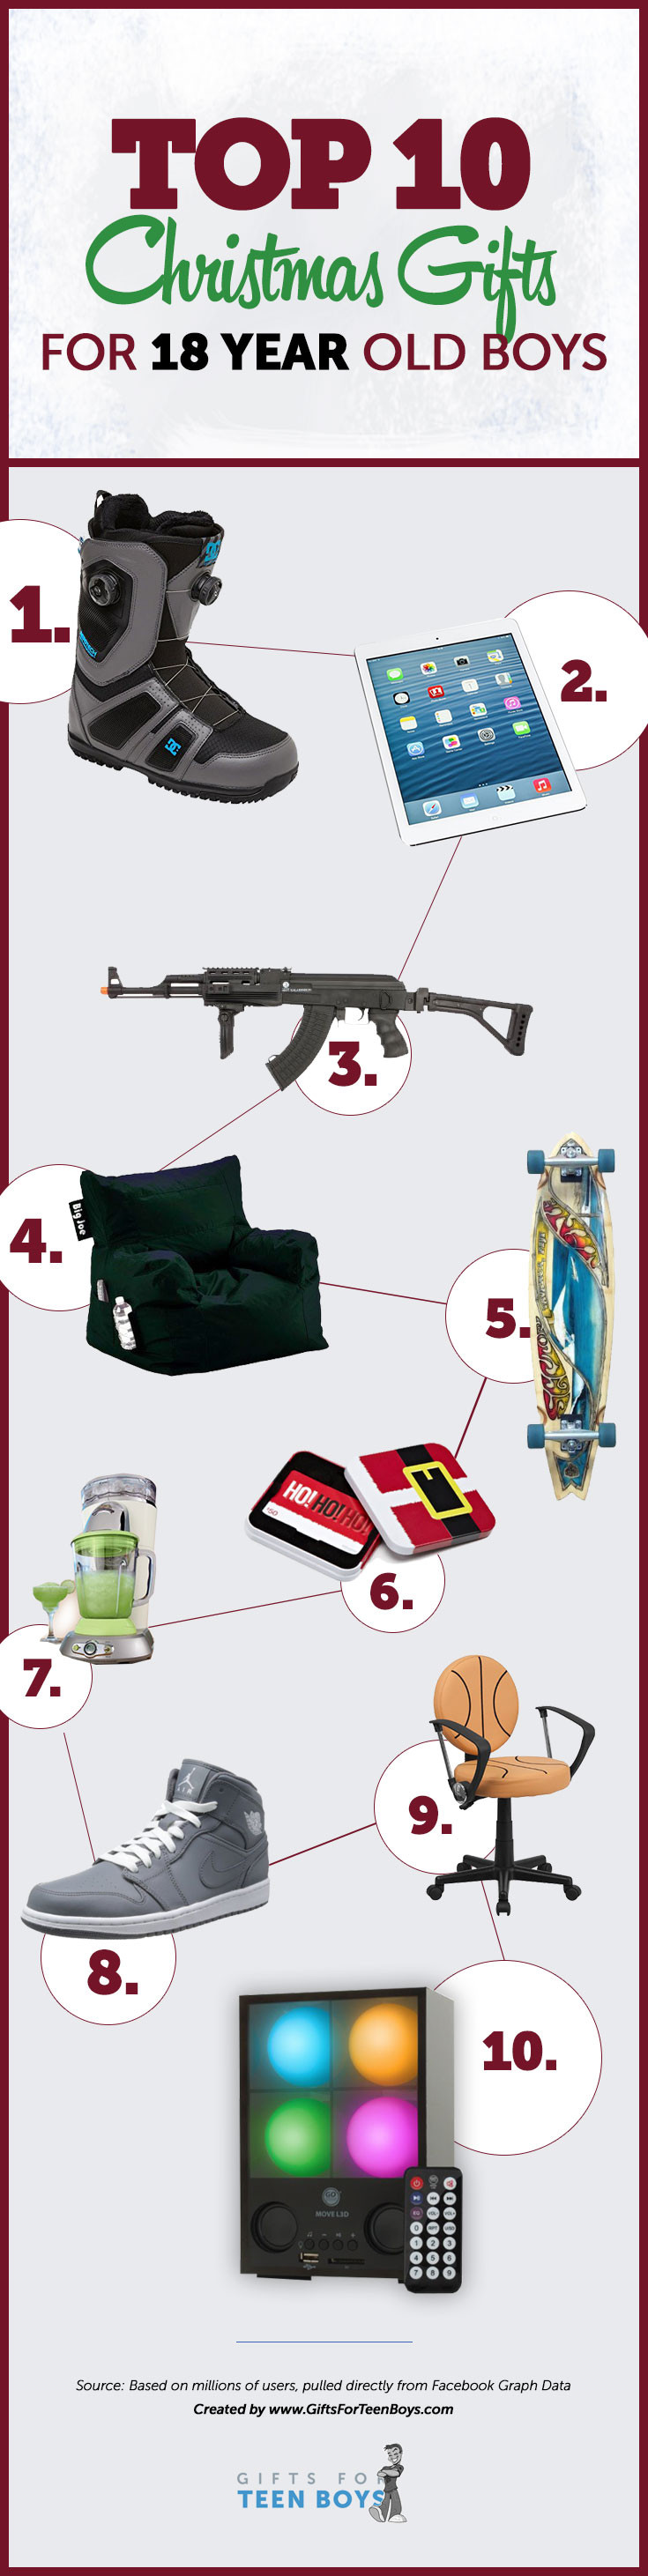 Best ideas about Gift Ideas For 17 Year Old Boys . Save or Pin Top 10 Christmas Gifts For Teen Boys Now.